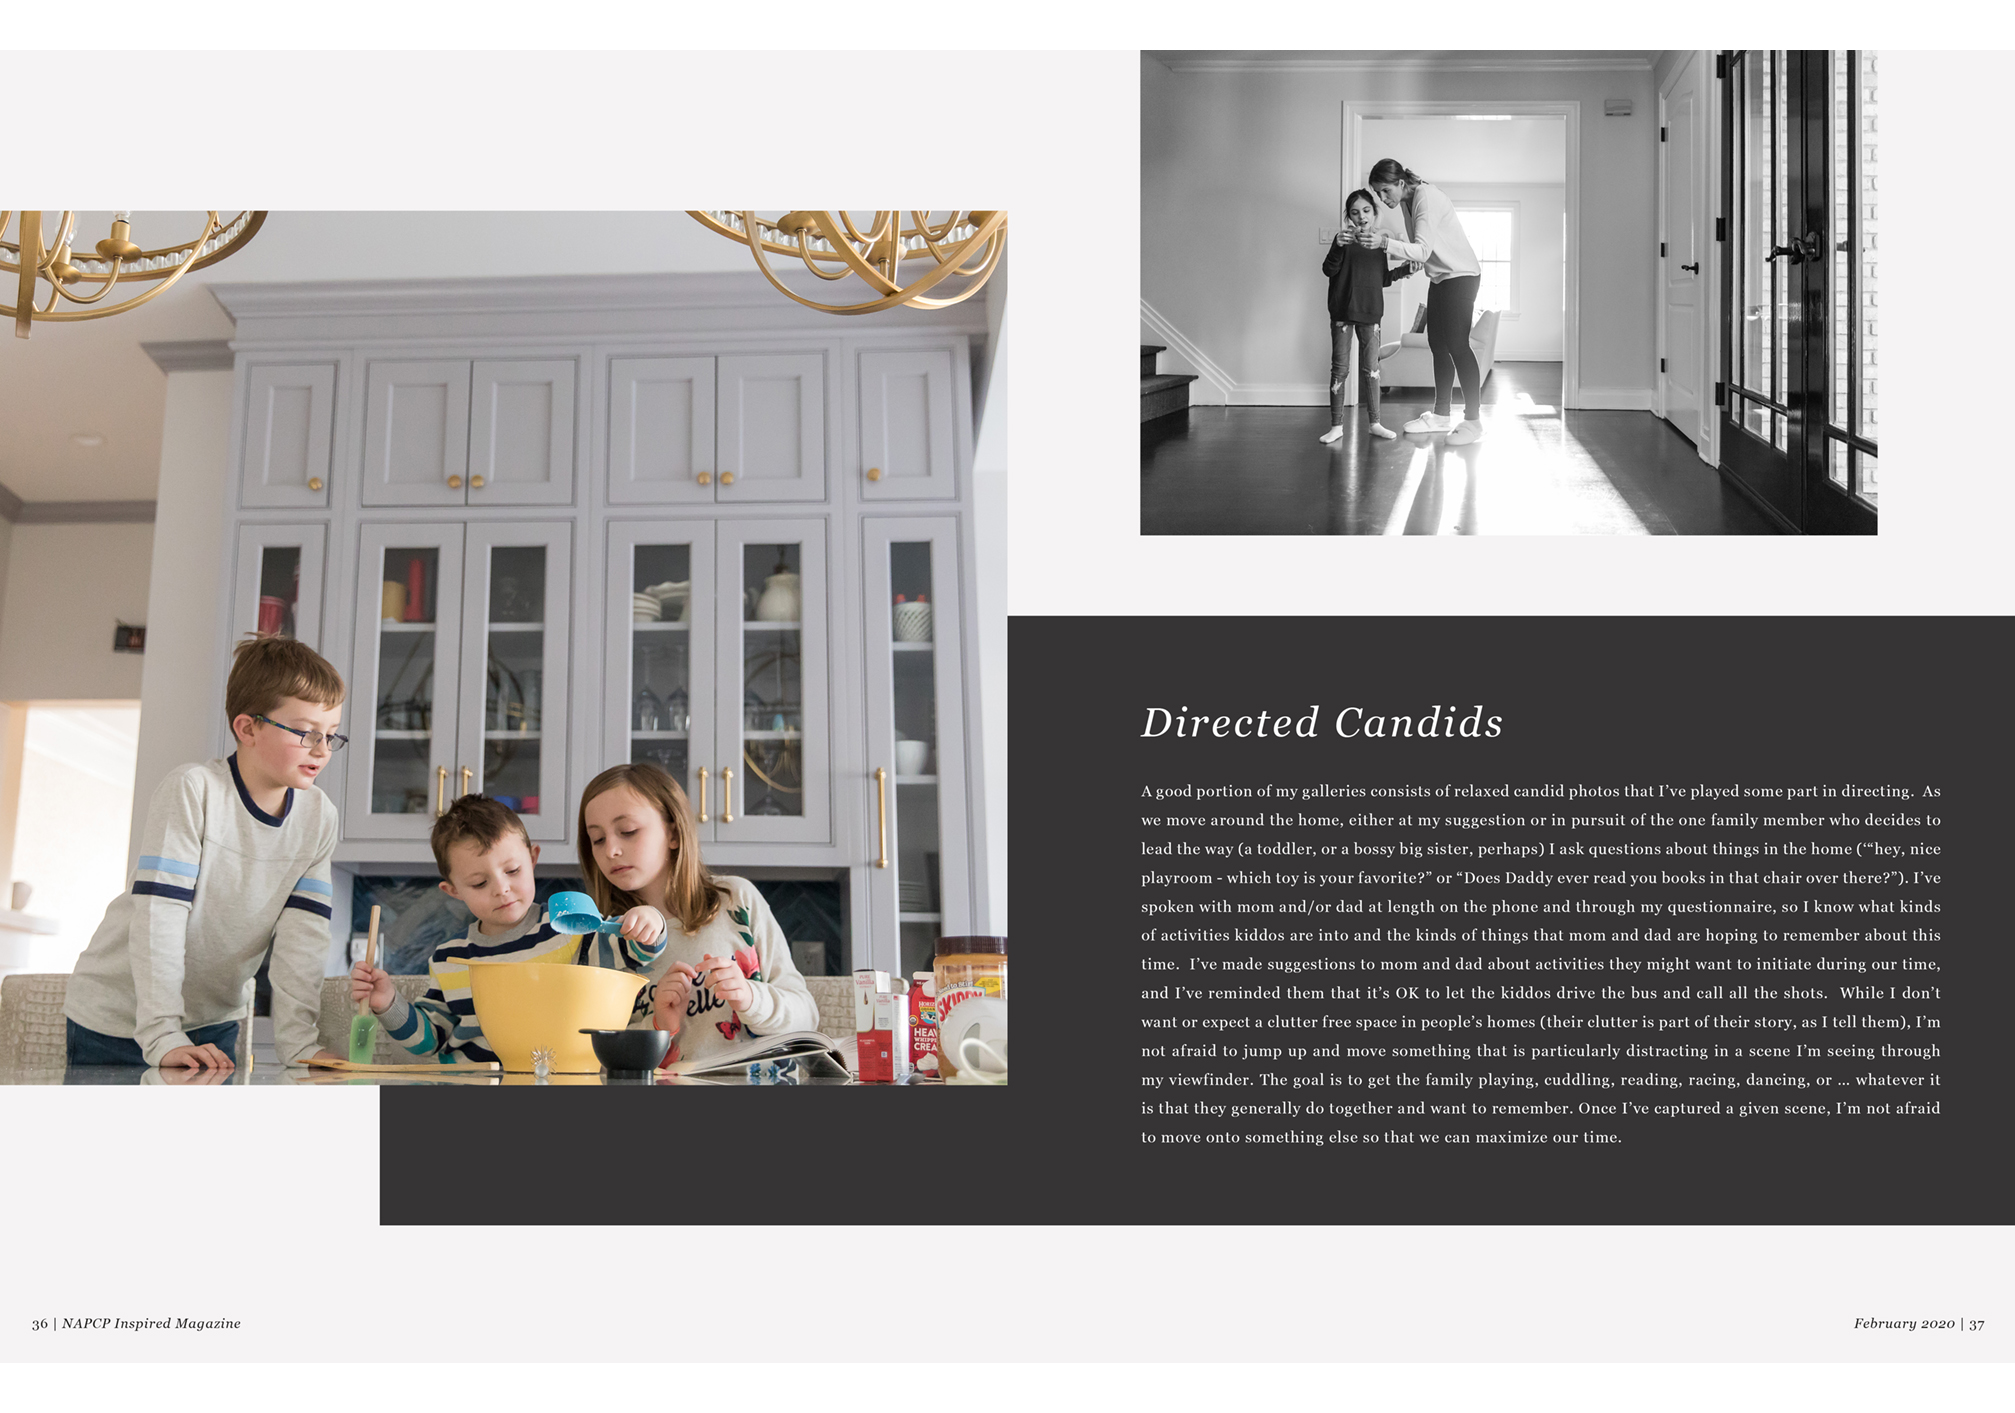 directed candid photography, siblings baking together, black and white image, Jaye McLaughlin article